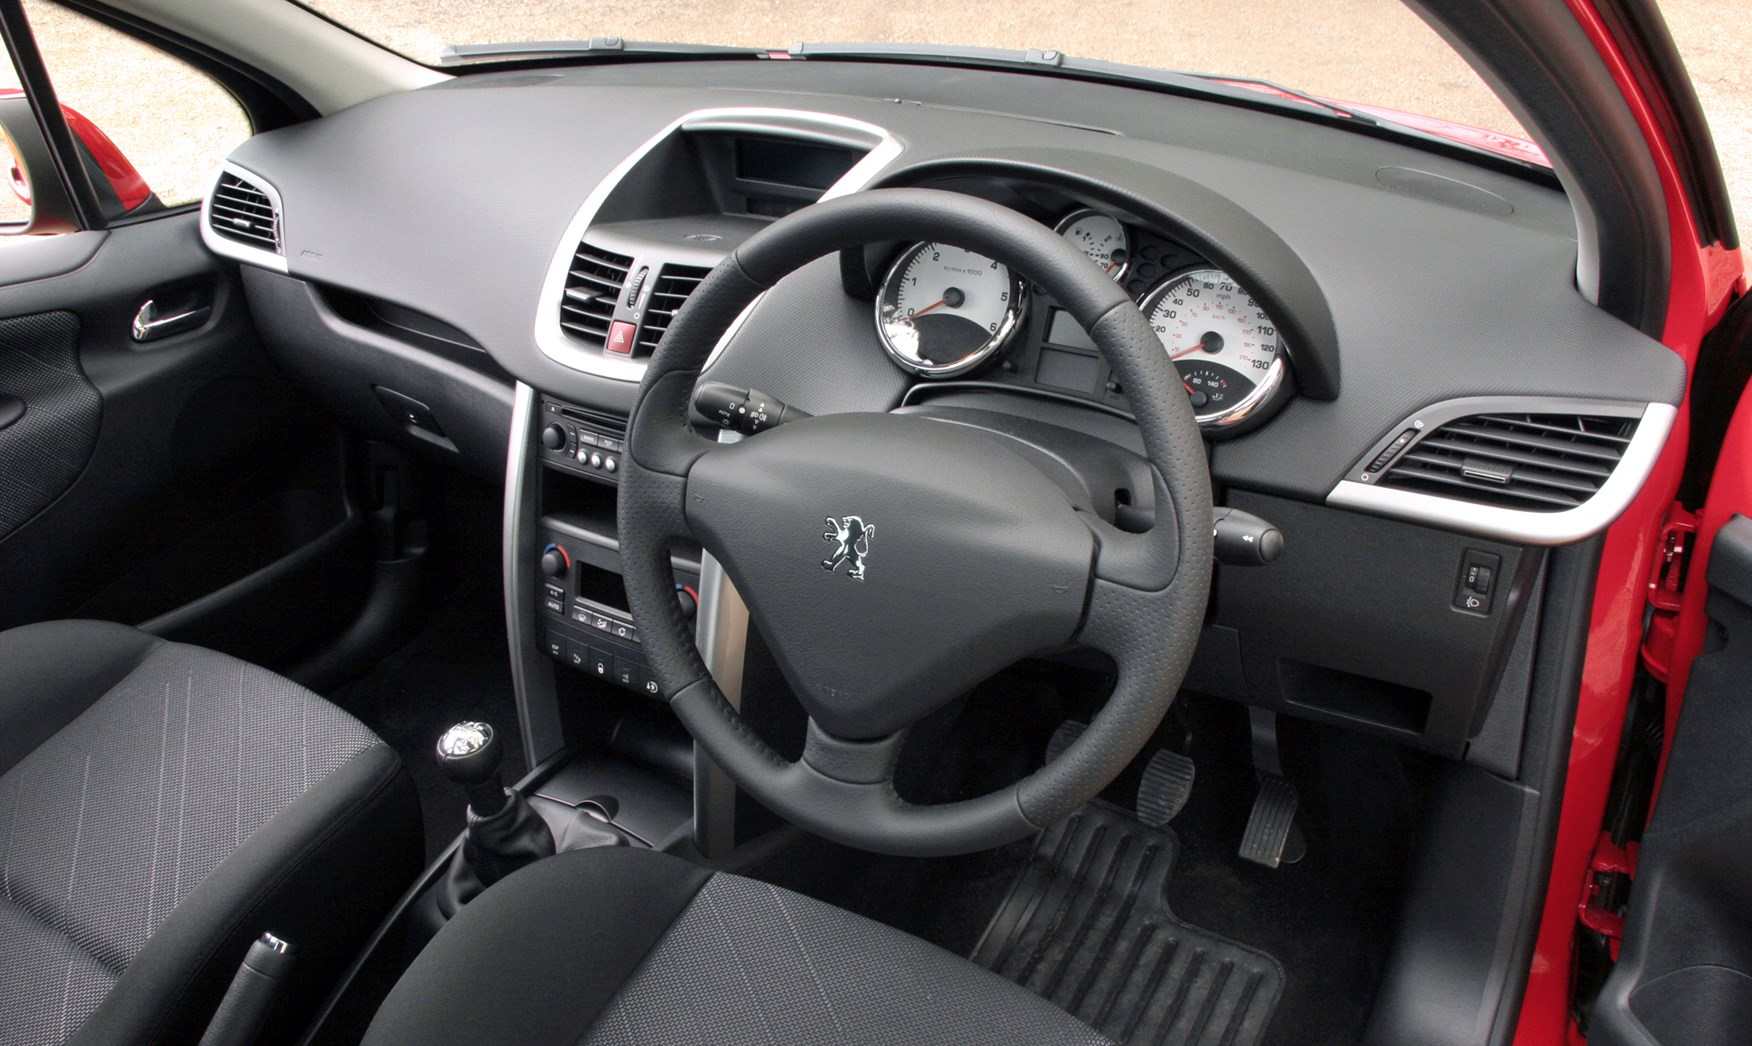 Peugeot 207 Sw 2007 2013 Features Equipment And Accessories